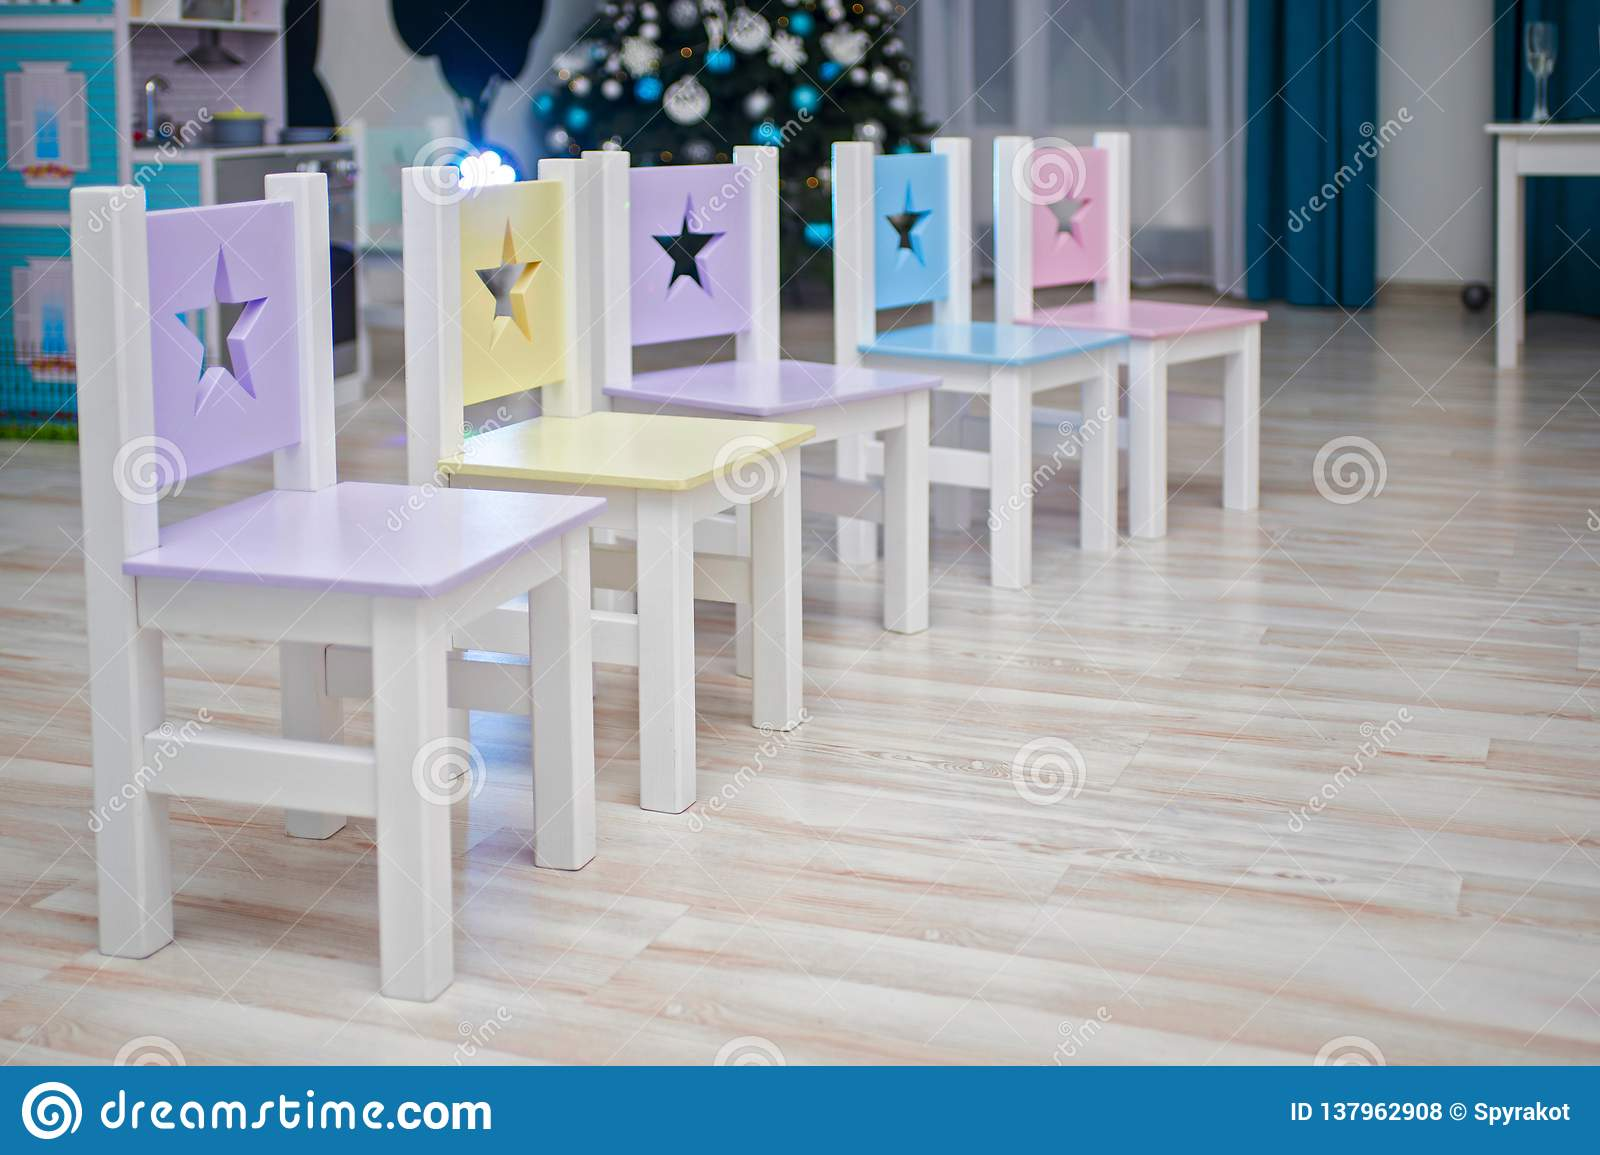 Chairs in children`s room. Kids room Interior. Chairs in kindergarten preschool classroom. Many brightly colored chairs for